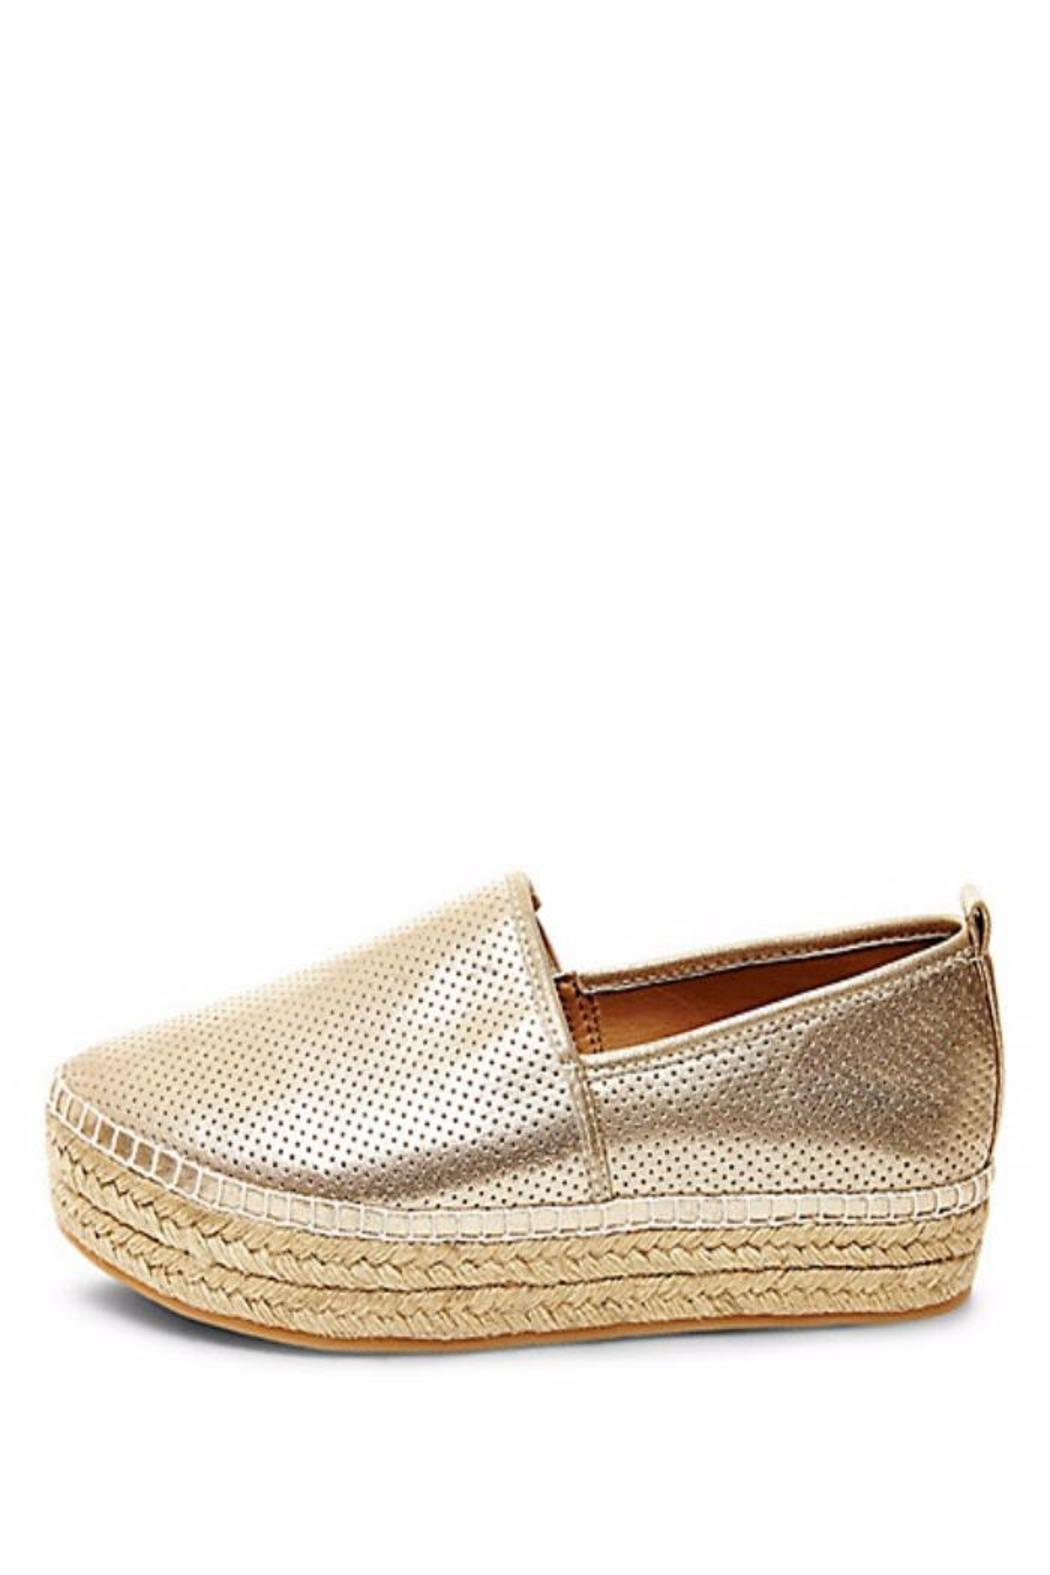 Steve Madden Peppa Espadrille - Front Cropped Image